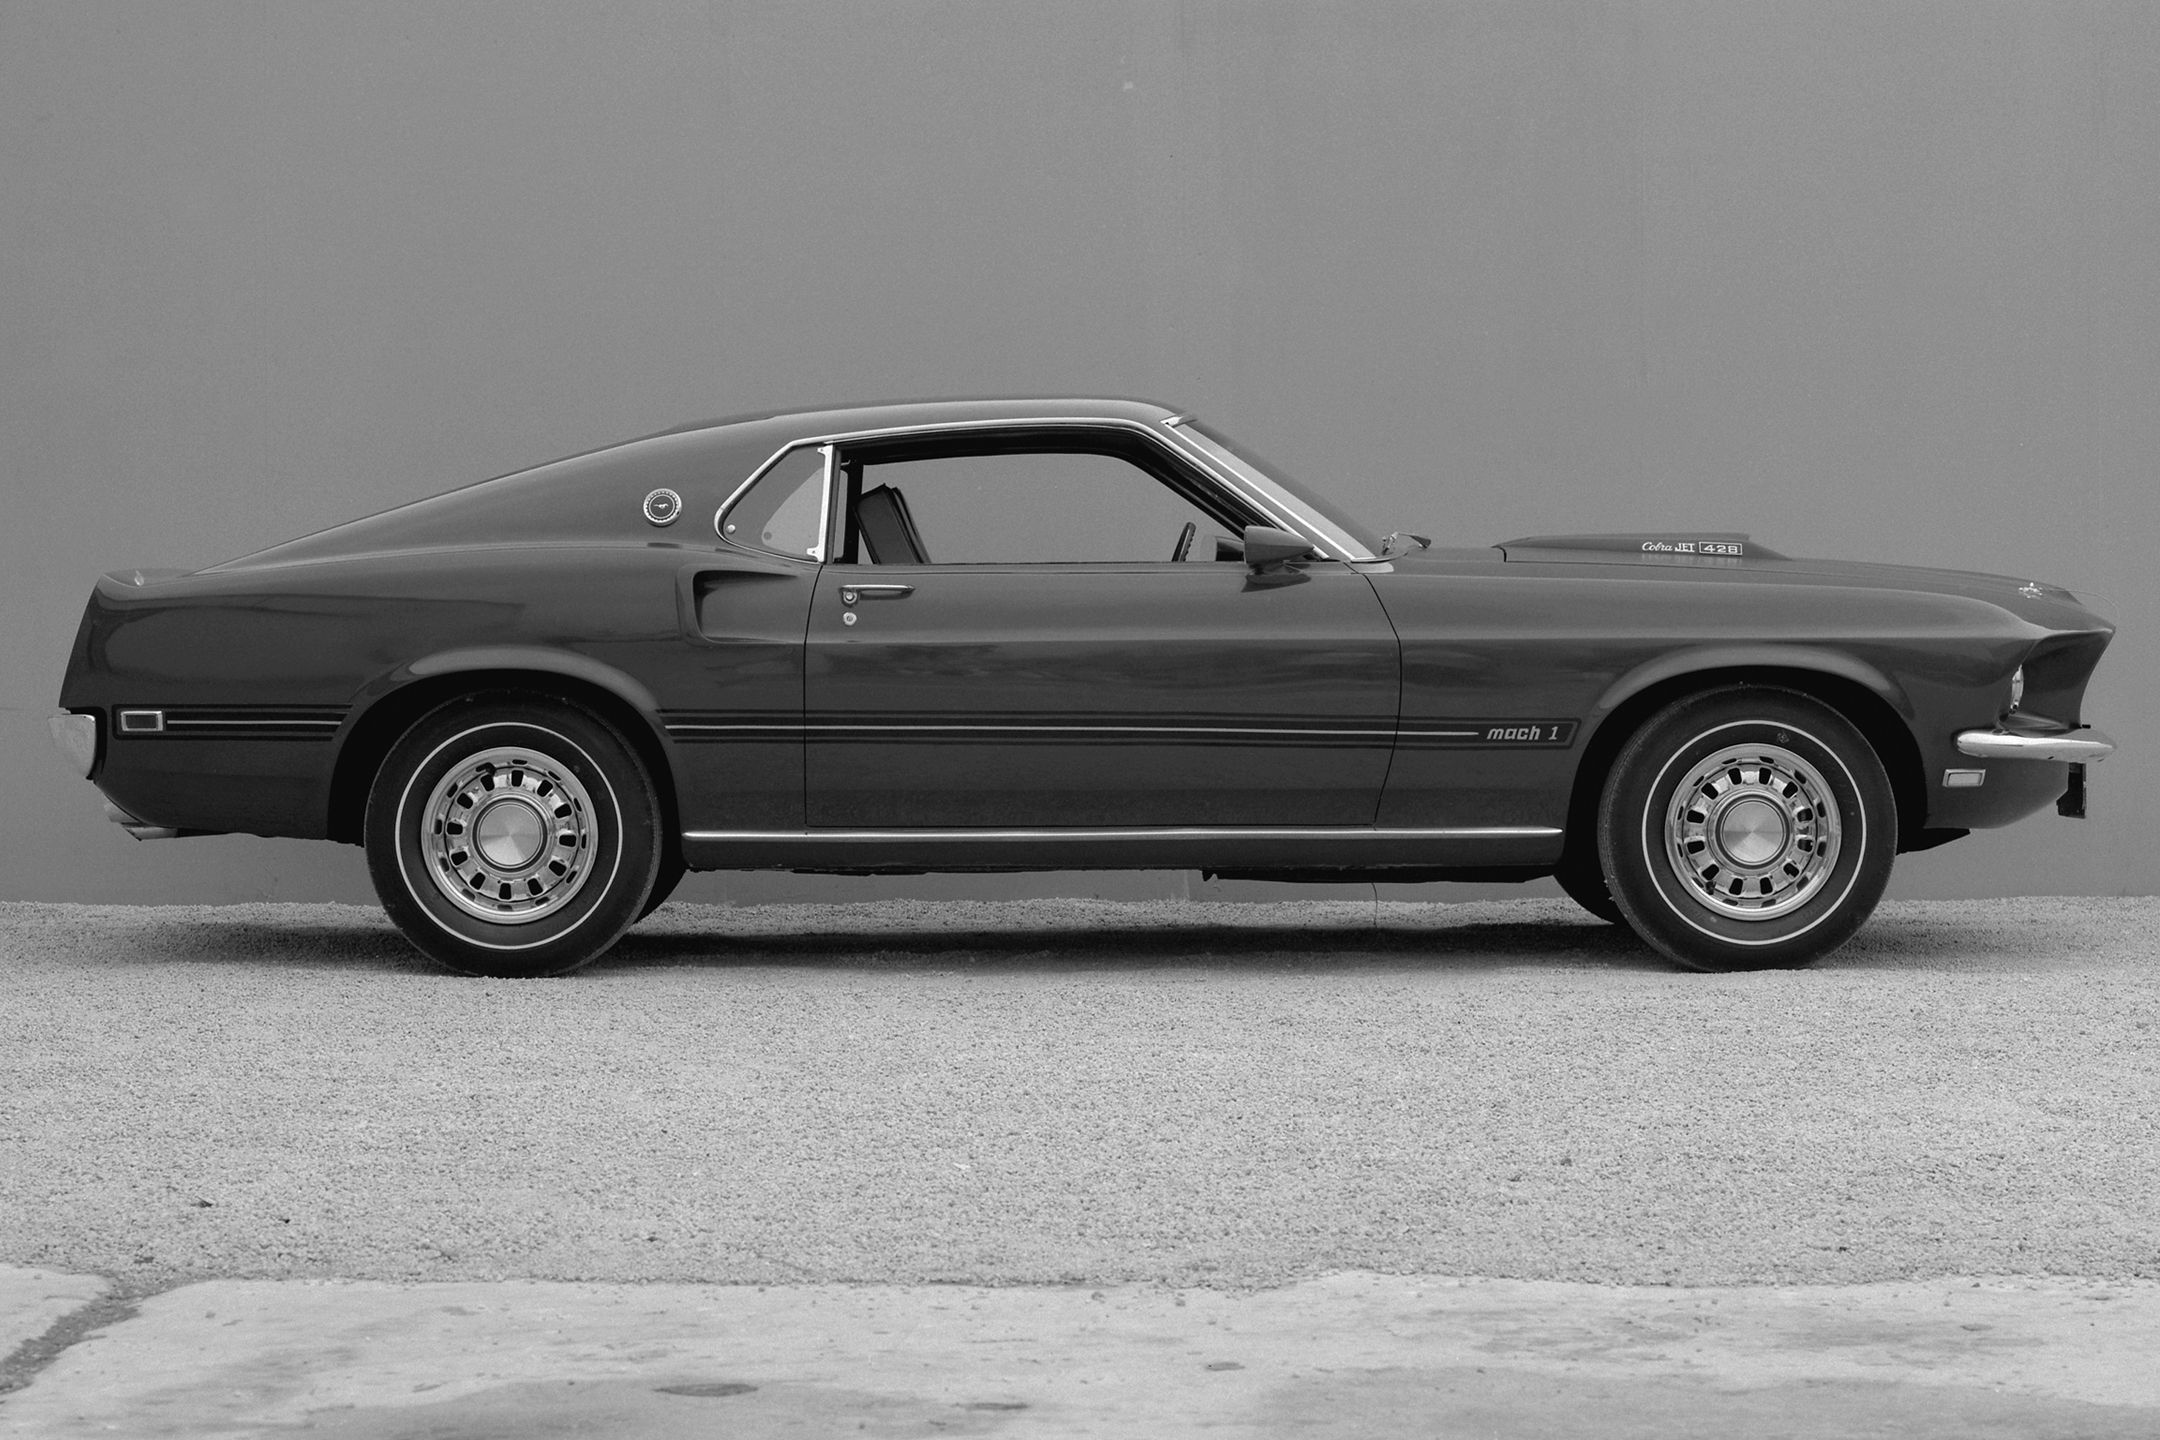 Ford Mustang Mach1 - 1969 - heritage - side-face / profil